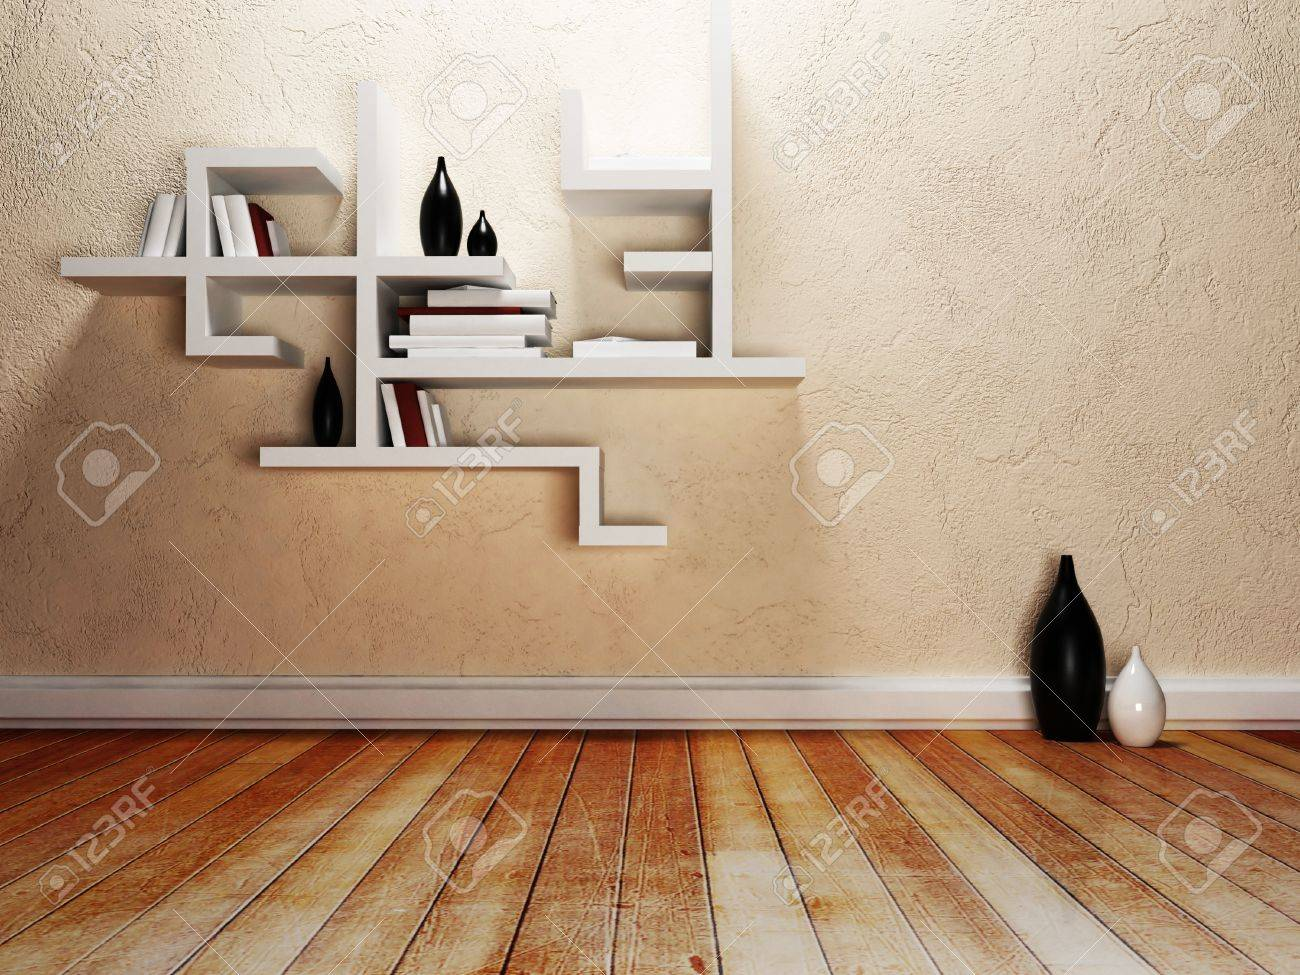 Creative Shelf Creative Shelves On The Wall Rendering Stock Photo Picture And